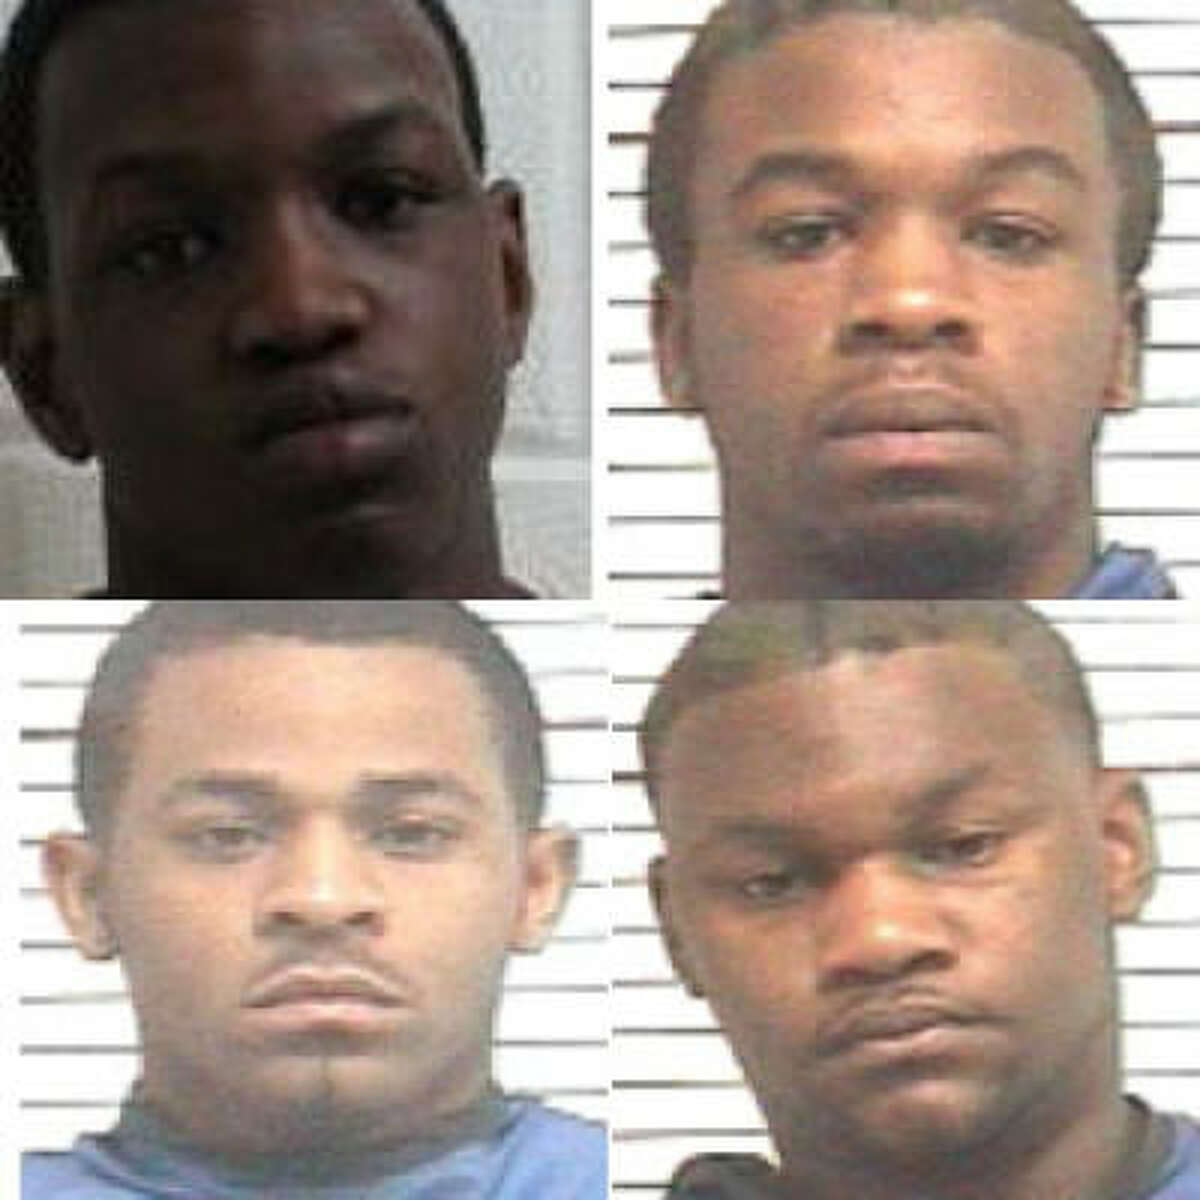 The suspects in the brutal attack are (from top, left) Jared Len Cruse, 18; Timothy Daray Ellis, 19; (from bottom, left) Rayford Tyrone Ellis Jr., 19, and Isaiah Rashad Ross, 21.